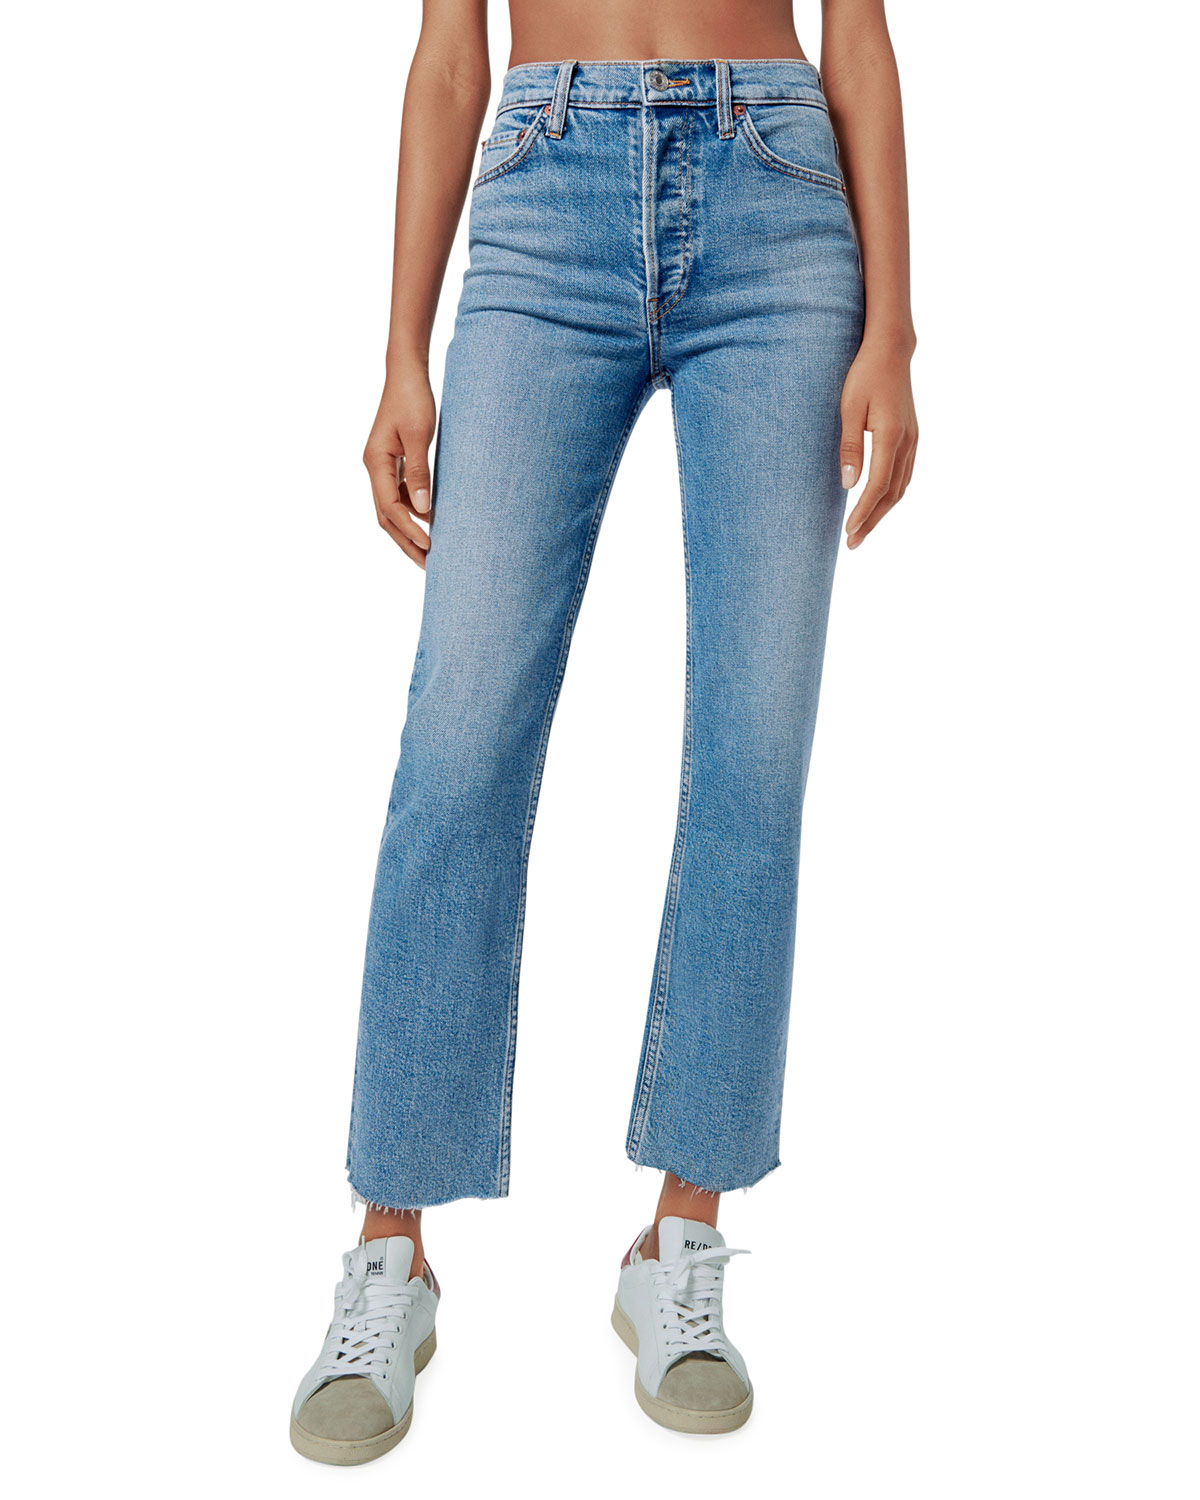 Re/done HIGH-RISE STOVEPIPE JEANS WITH RAW-EDGE HEM